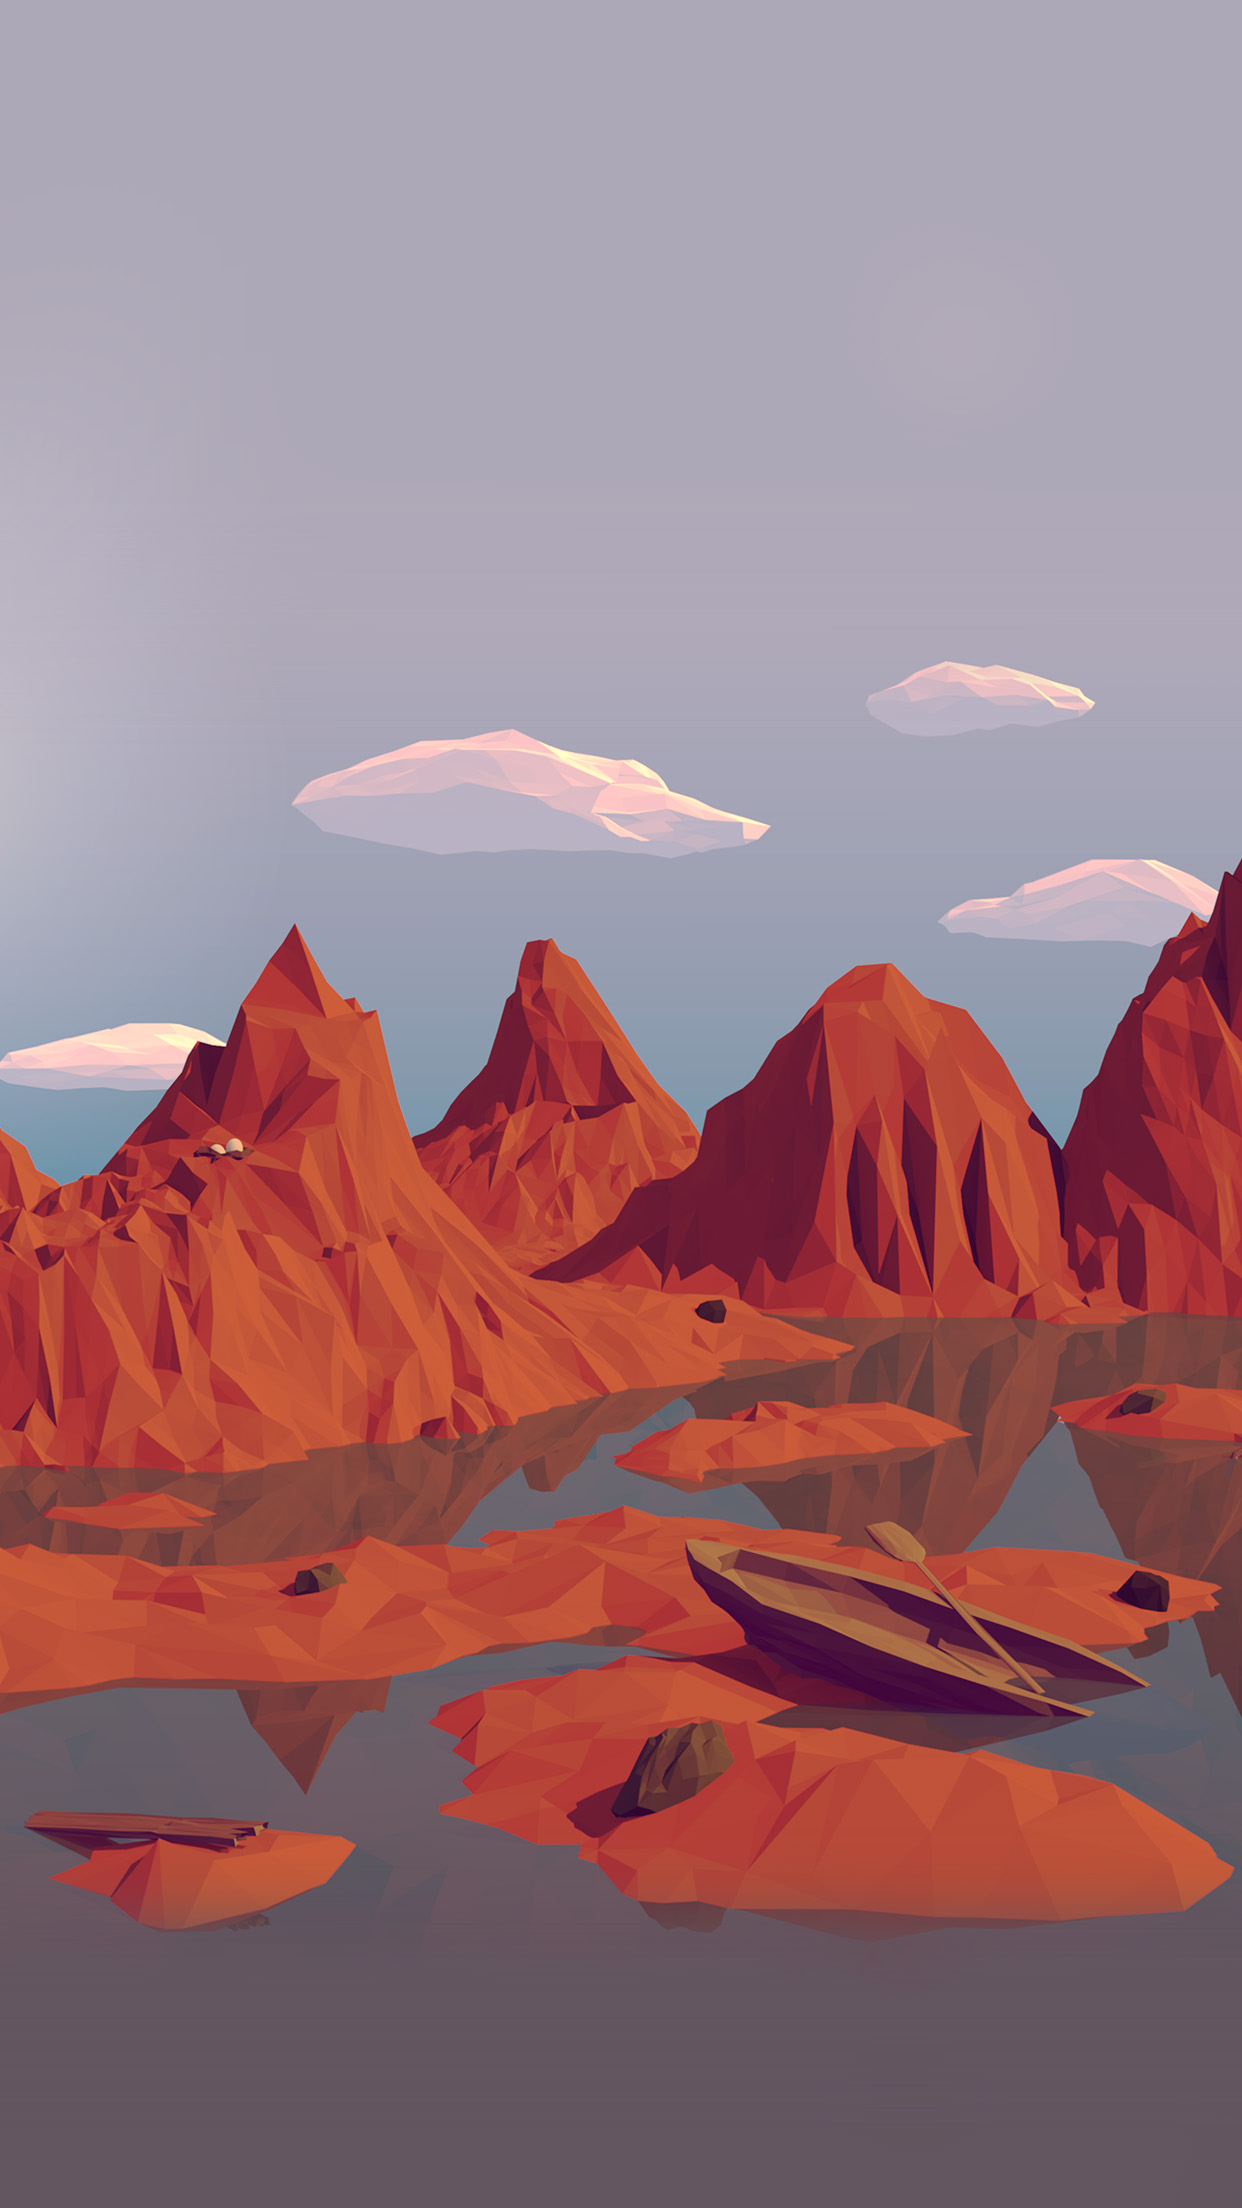 Best Wallpaper In 3d Parallax Background Am37 Low Poly Art Mountain Red Illust Art